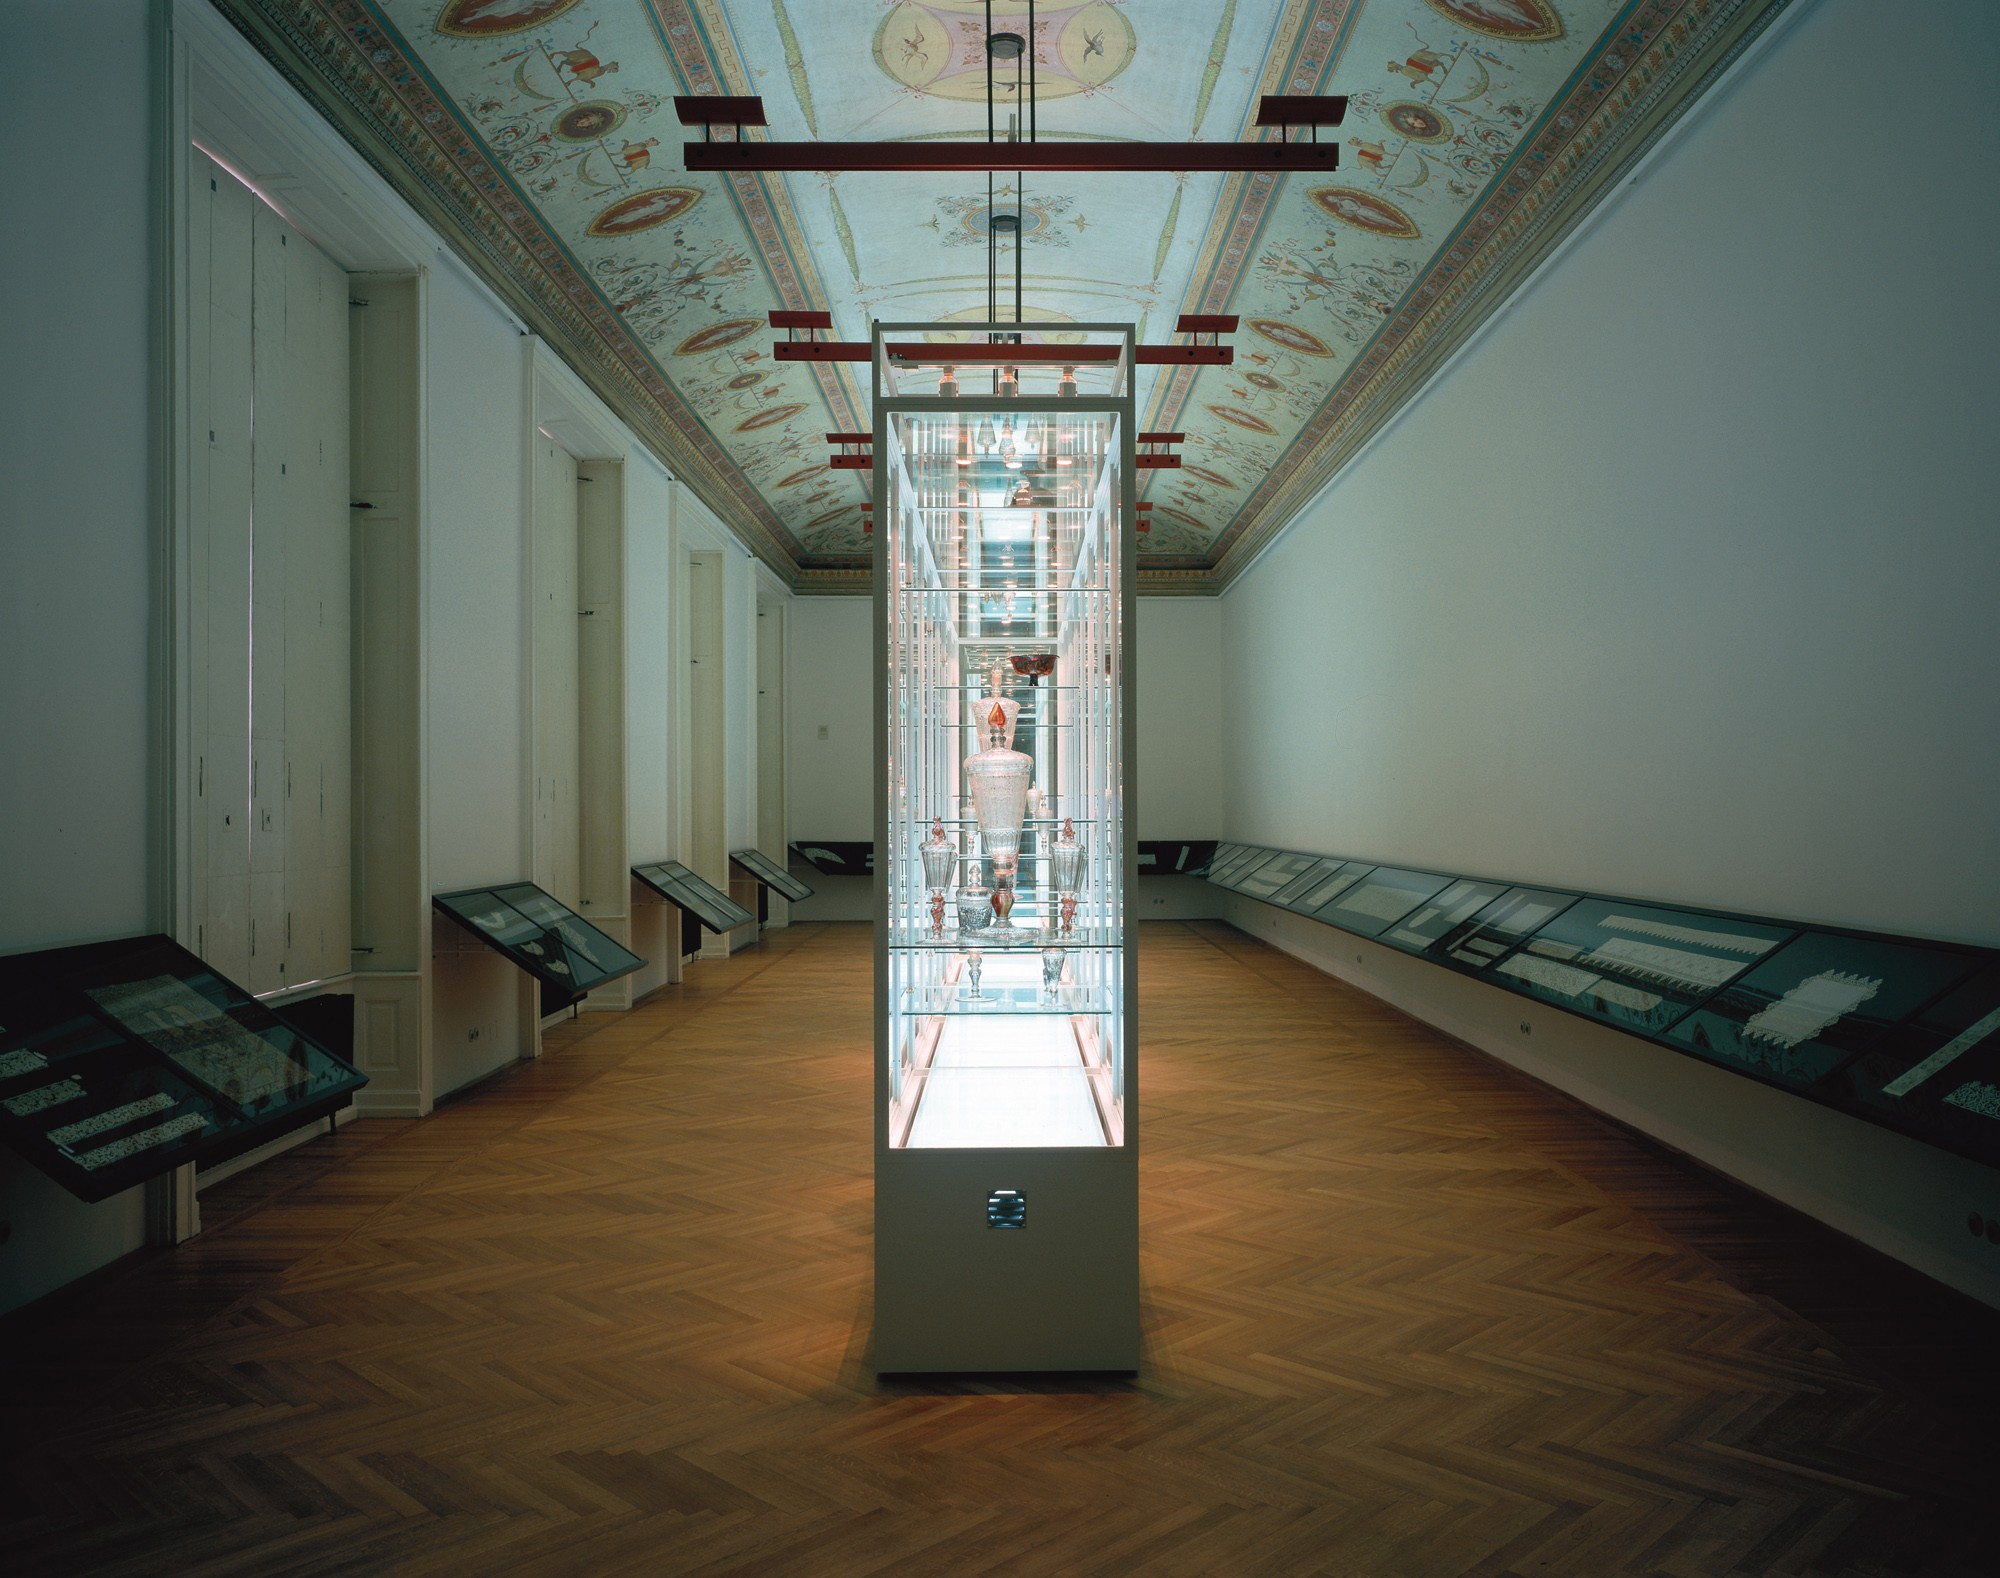 <BODY>Exhibition View</BODY>